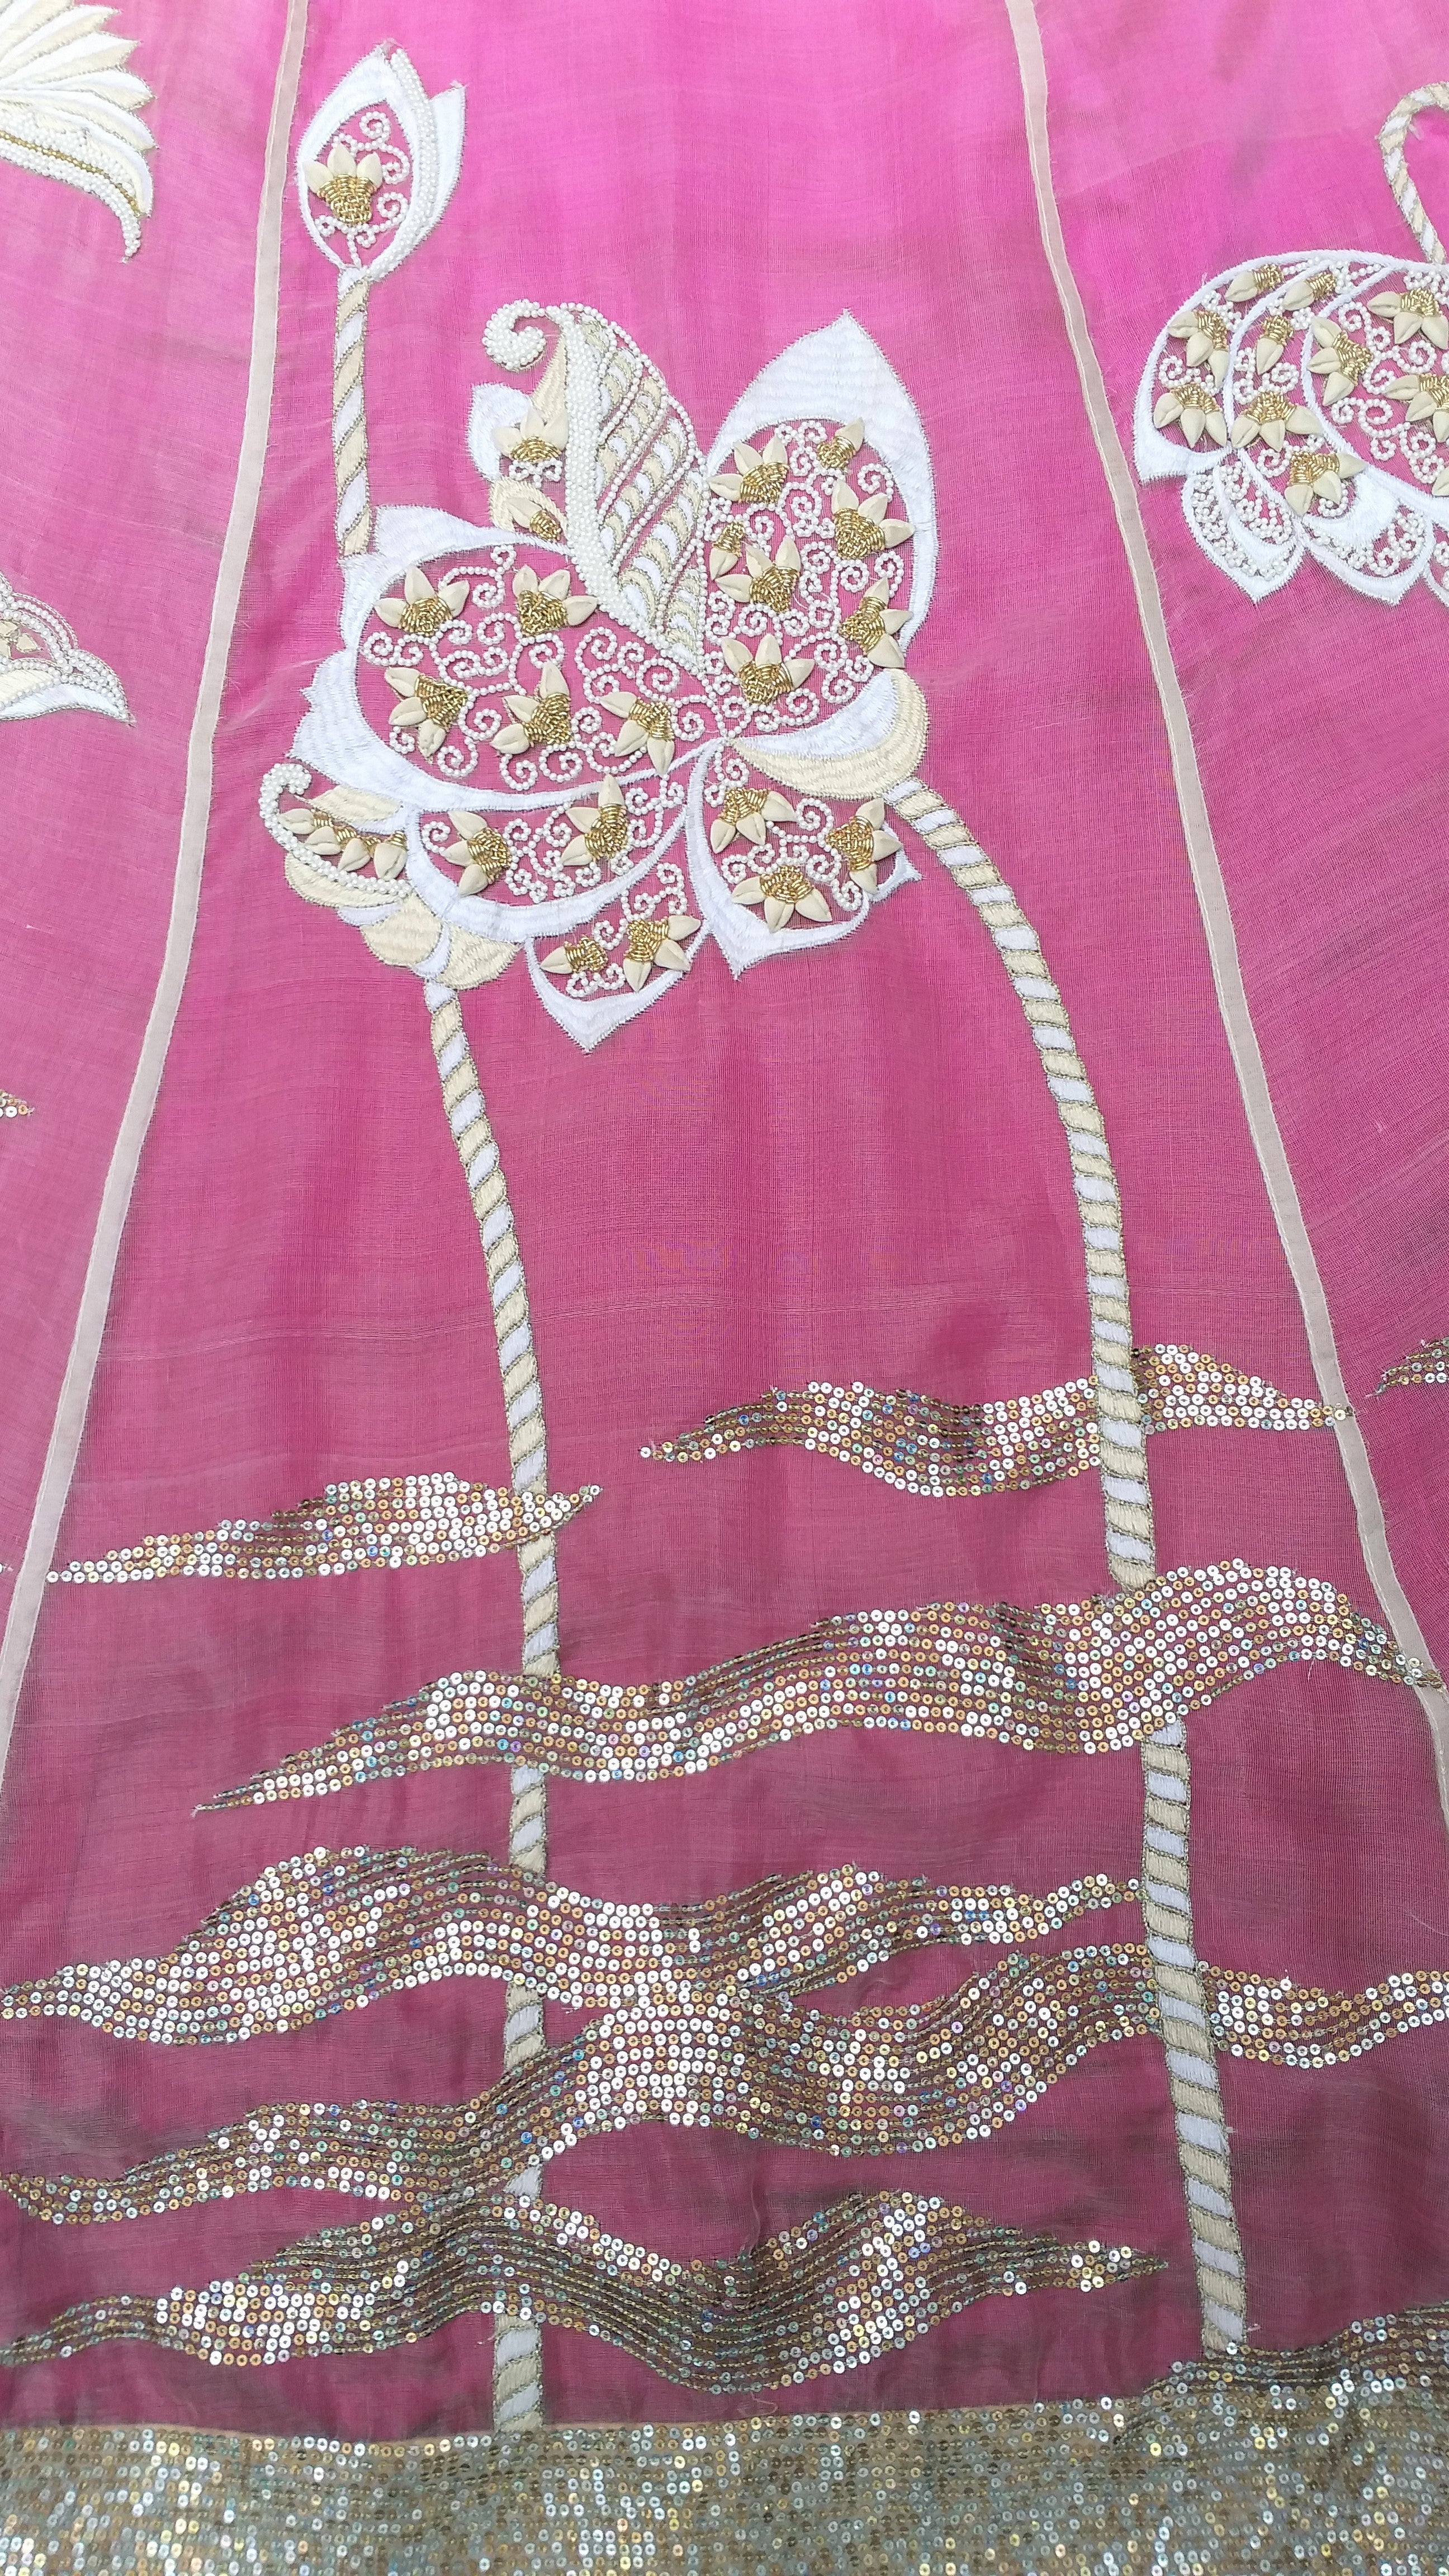 Katan Silk Rosebuds And Gota patti lotuses Embroidered Lehenga